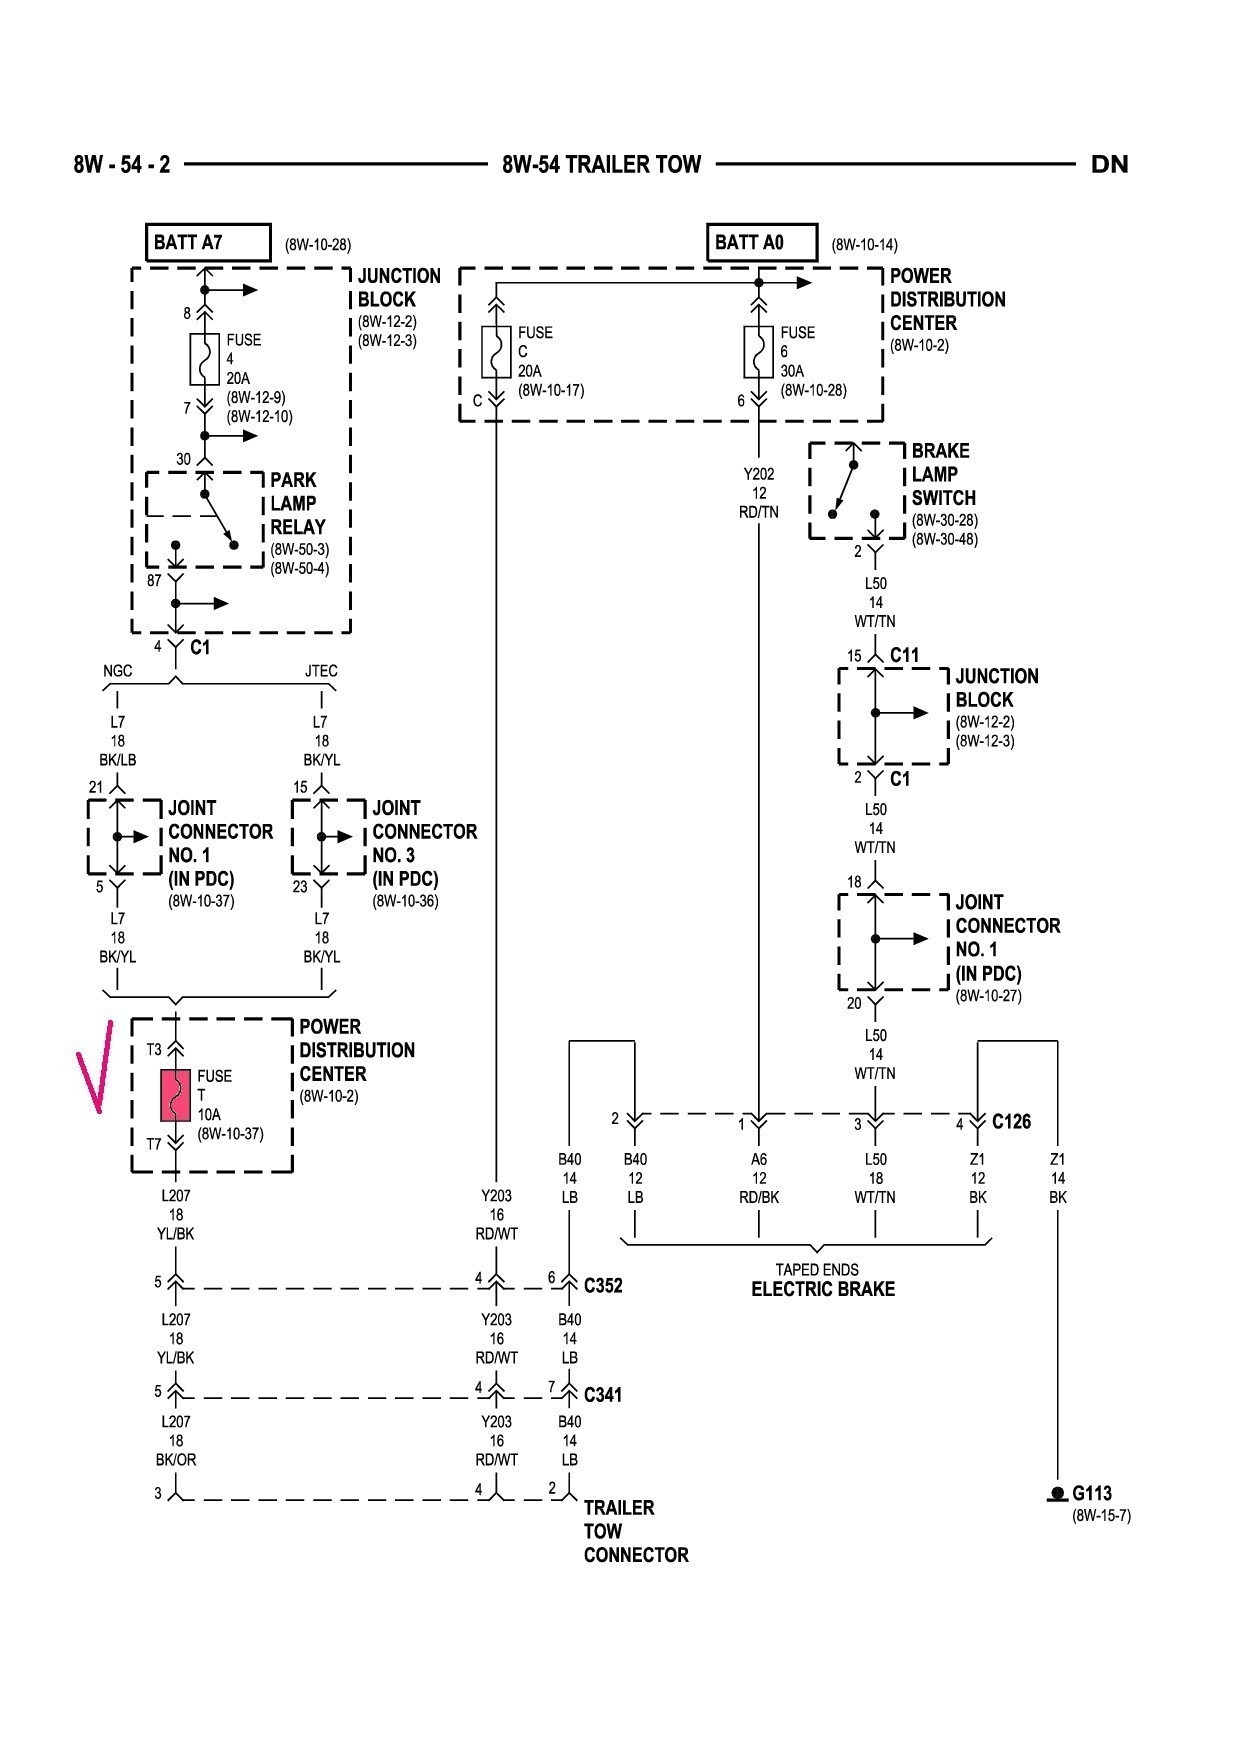 1998 dodge dakota stereo wiring diagram 1998 dodge dakota headlights wiring schematics #6